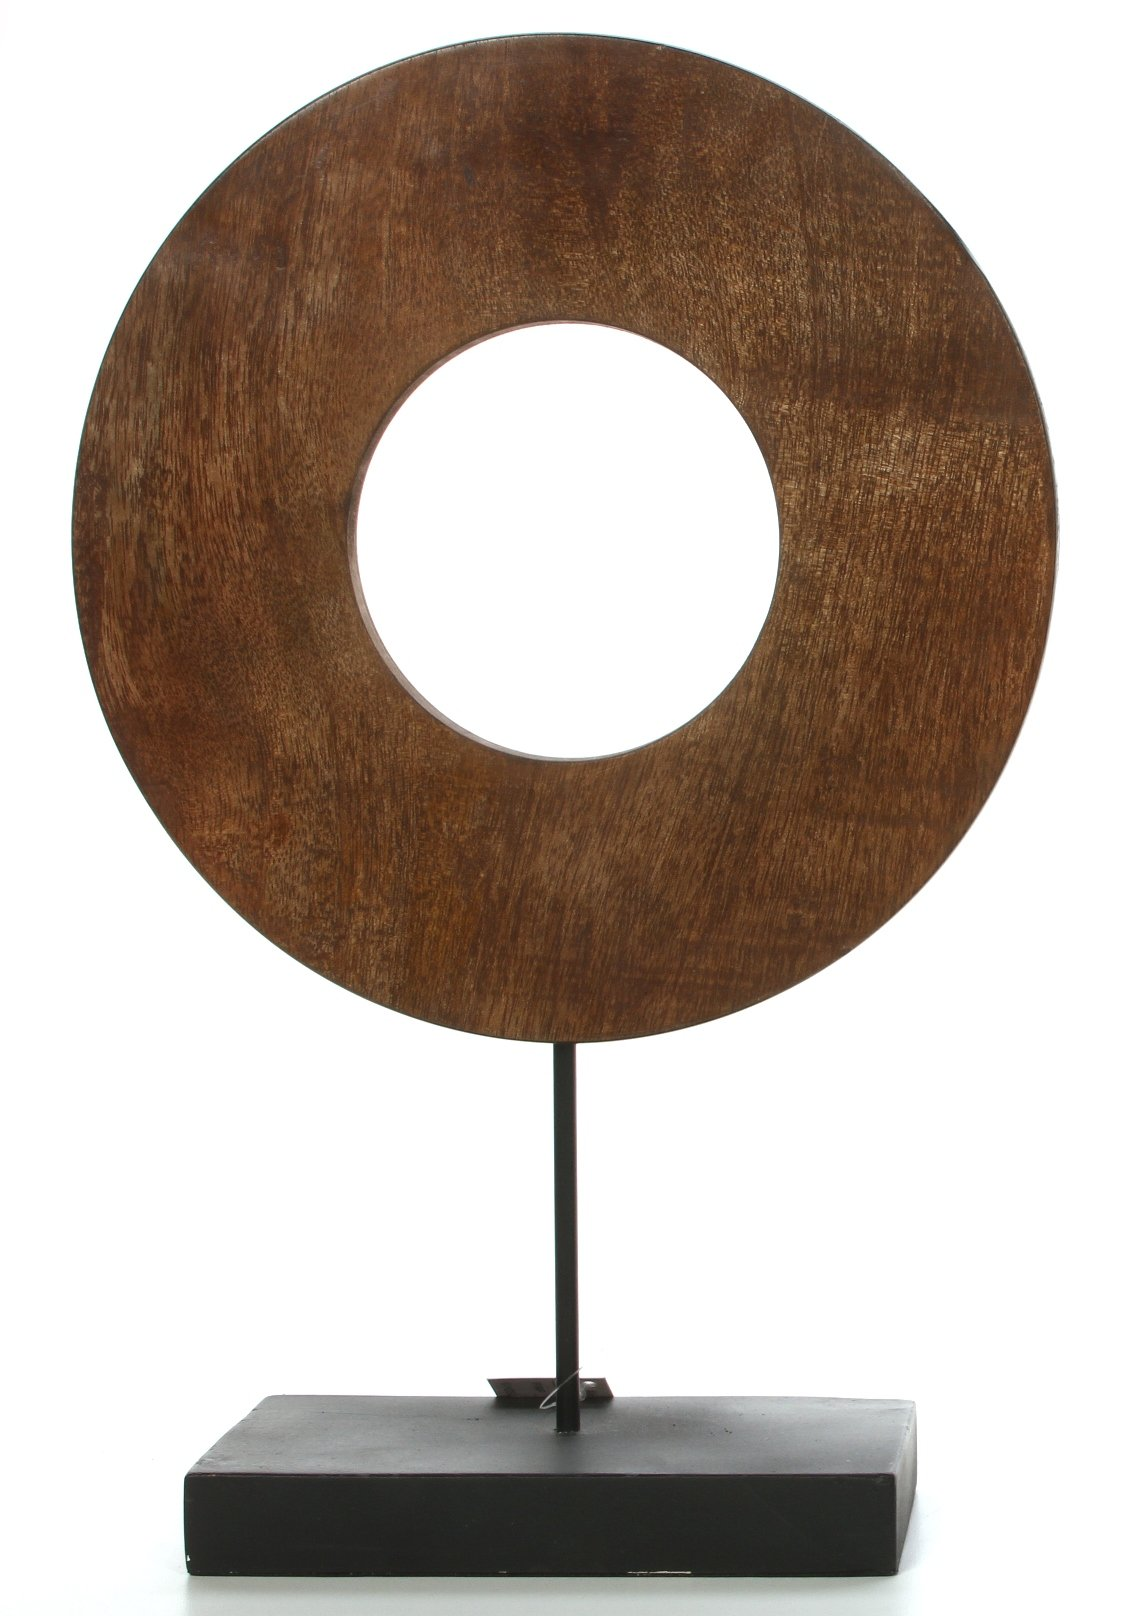 Hosley 15'' High, Decorative Zen Circle, Wood Tabletop Pedestal, Large. Ideal Gift for Wedding, Home, Party Favor, Spa, Reiki, Meditation, Bathroom Settings O9